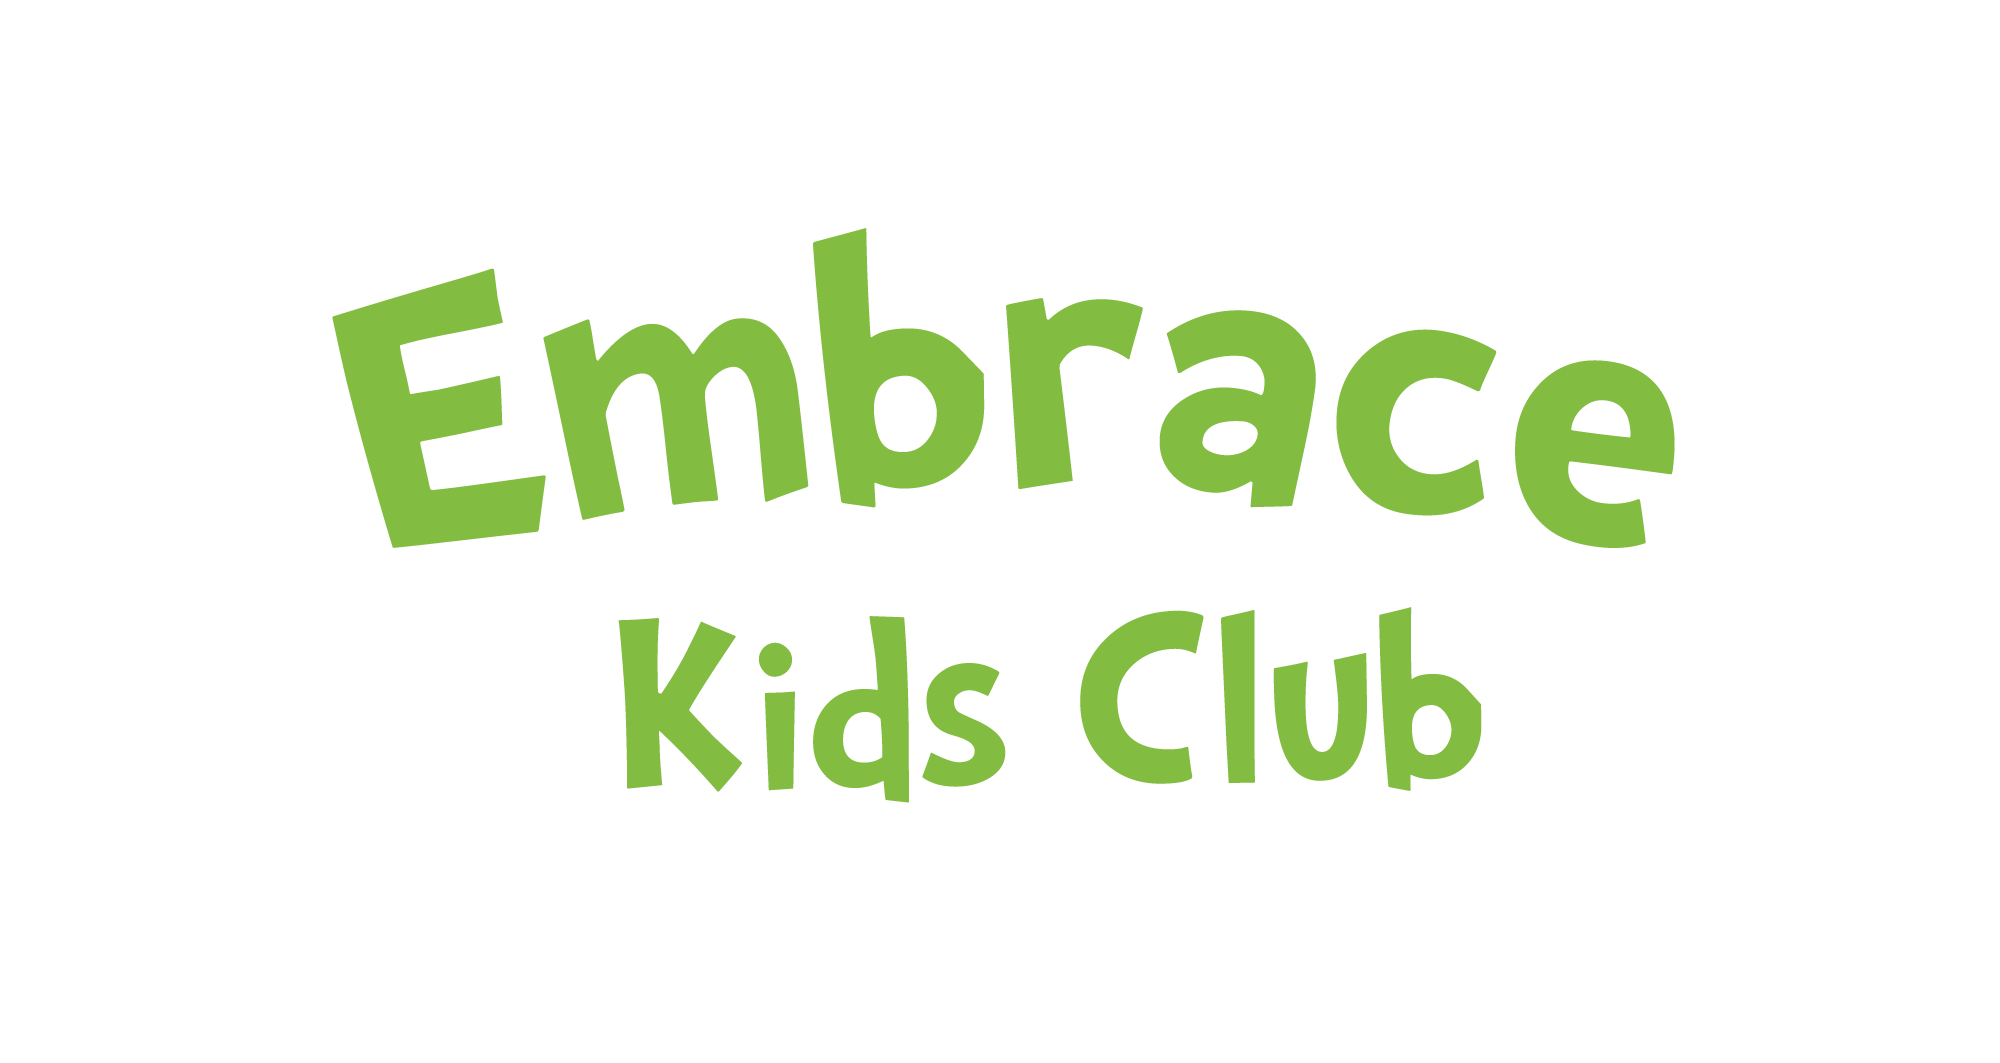 Embrace-Kids-Club-Logo-Green-Transparent